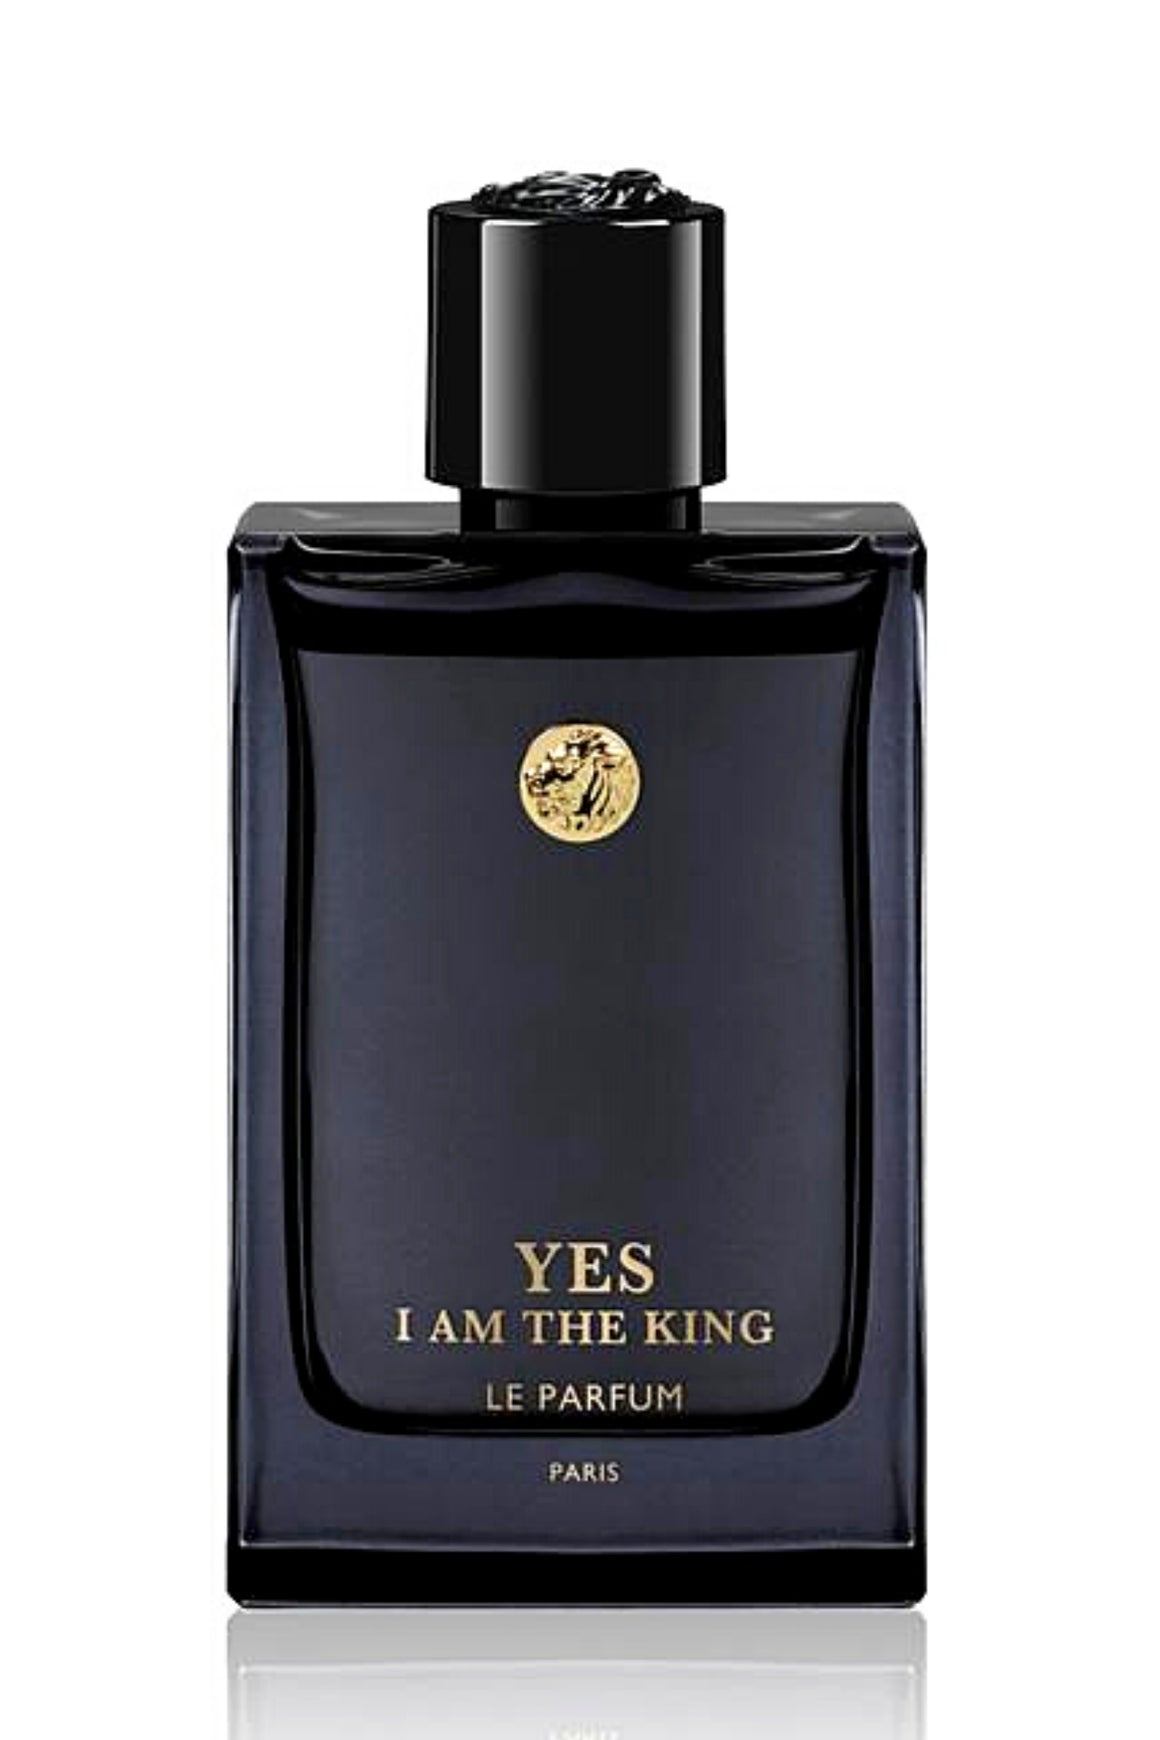 Yes, I am the King | Le Parfum EDP